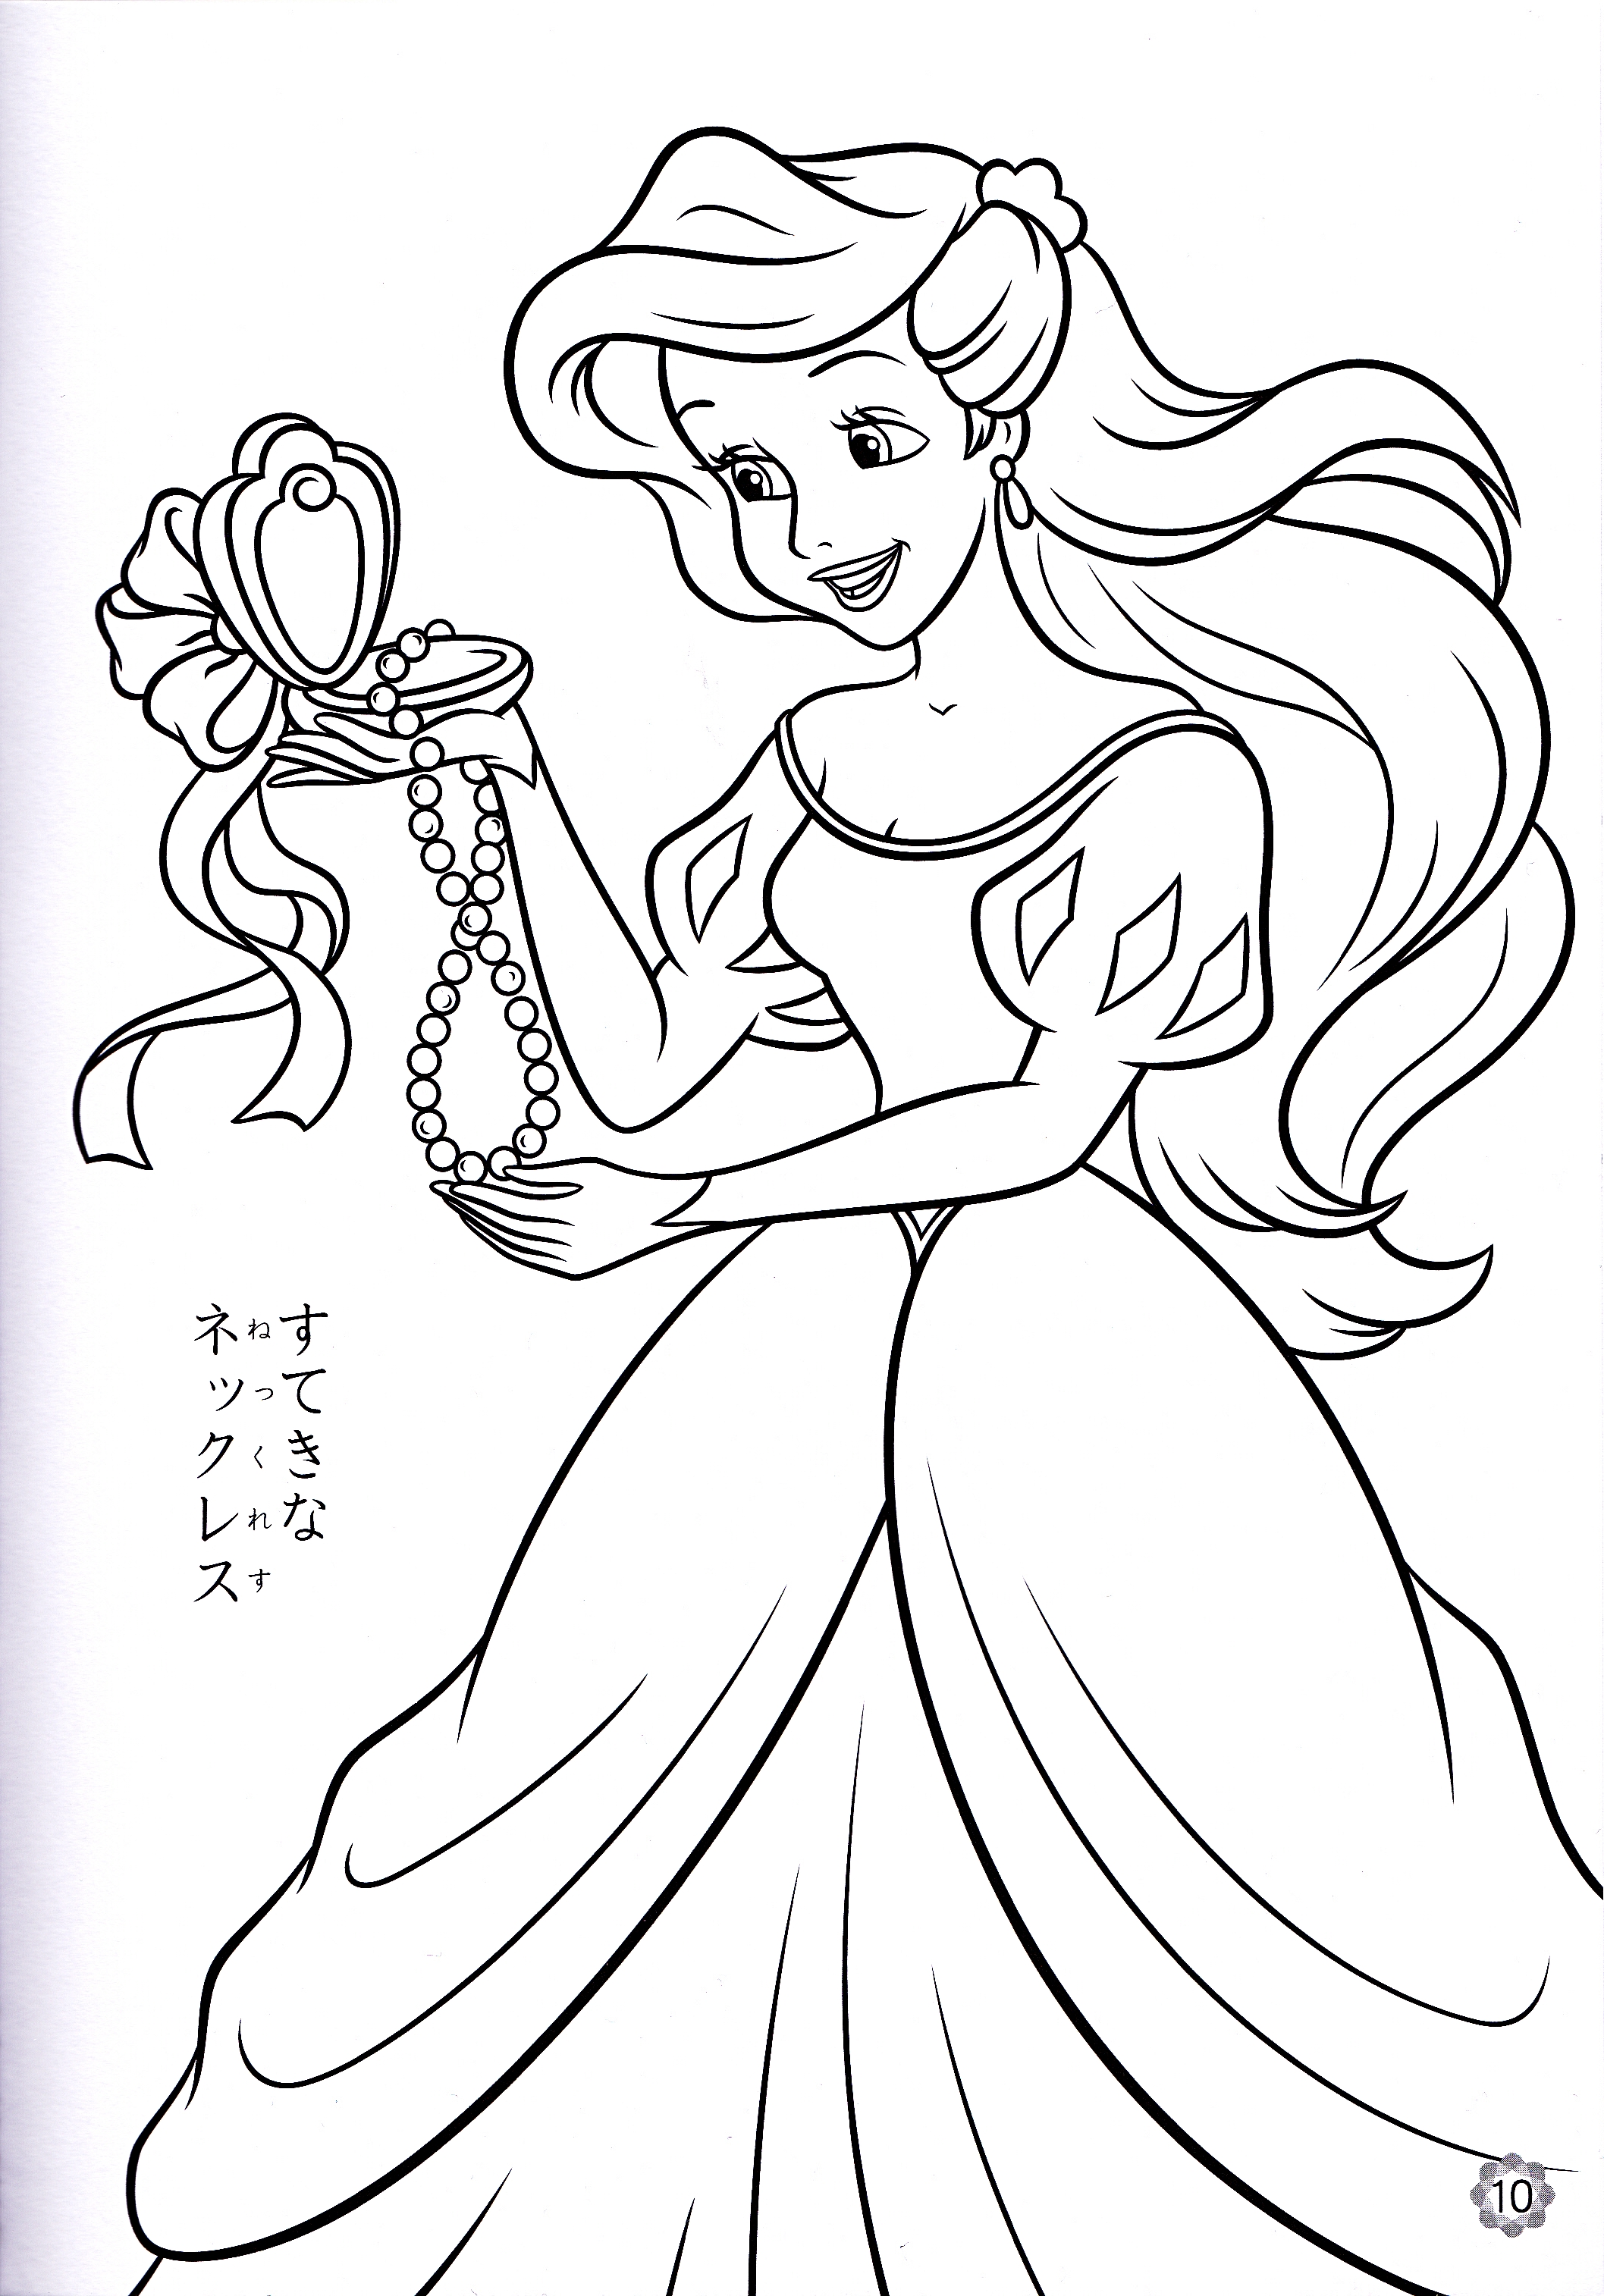 Walt disney coloring pages princess ariel walt disney for Free princess ariel coloring pages